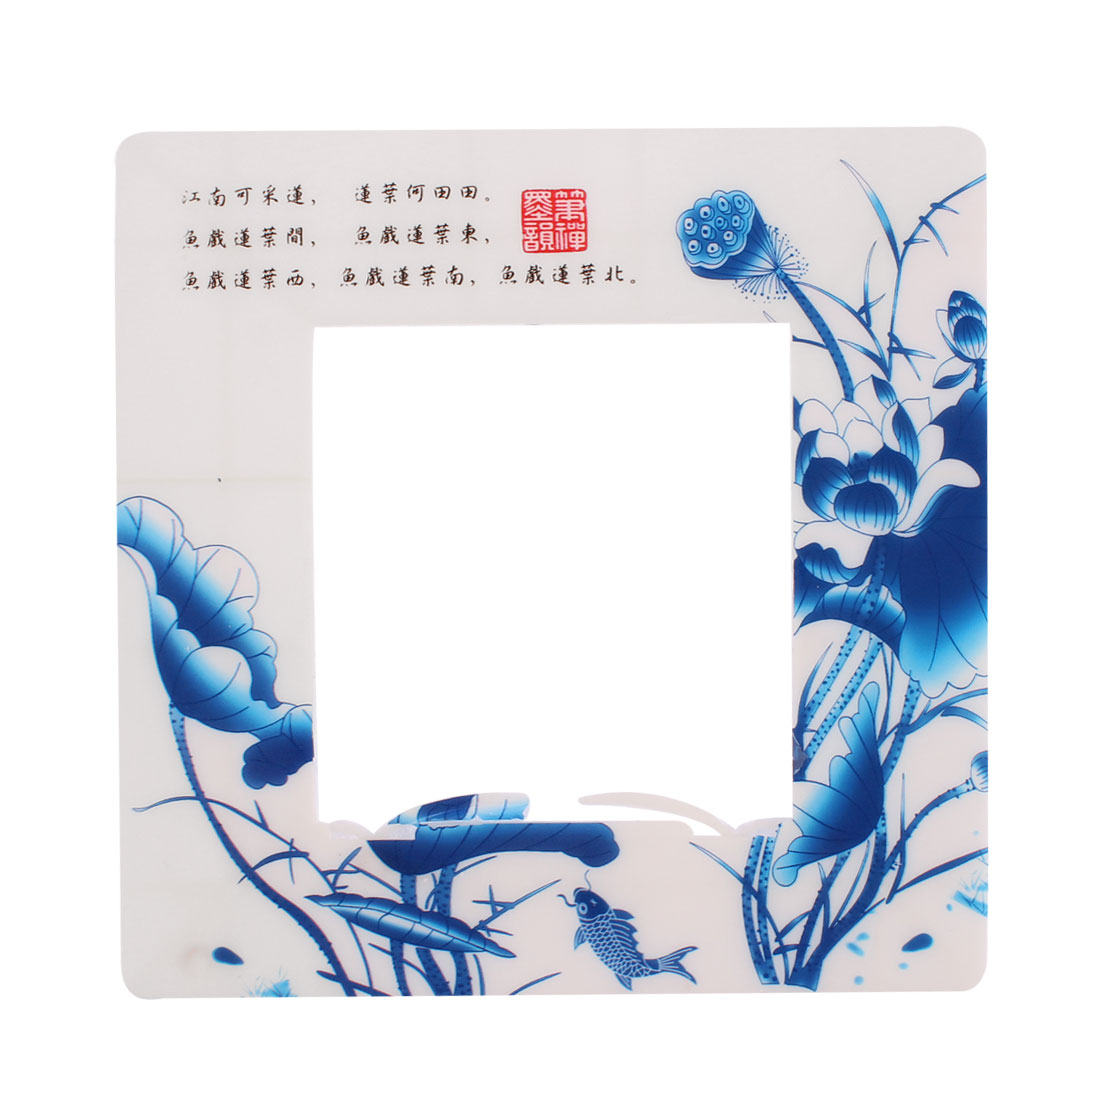 Lotus Pattern Sticker Cover Socket Protector for 8.5 x 8.5cm Switch